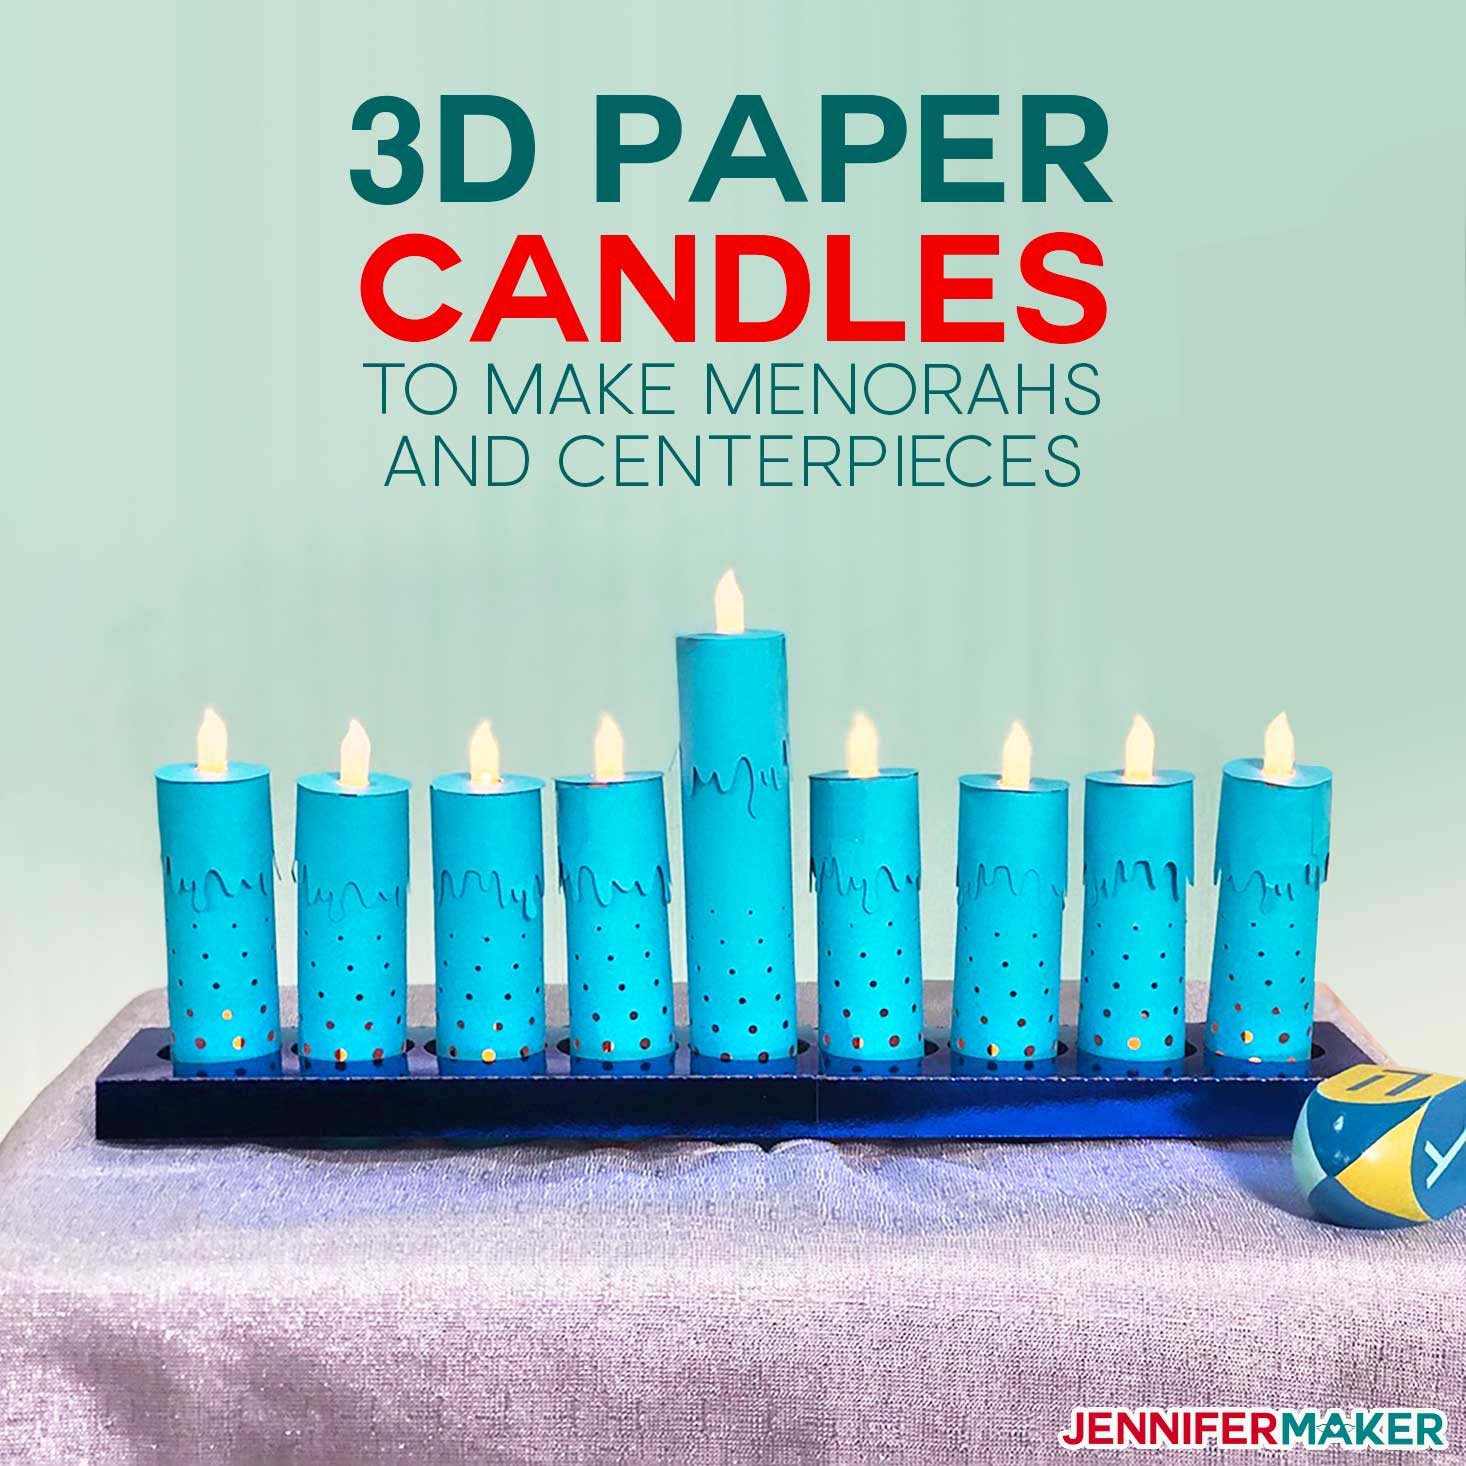 How to Make 3d Paper Candles for Hanukkah Menorah and Holiday Centerpieces on your Cricut | diy home decor #cricut #hanukkah #menorah